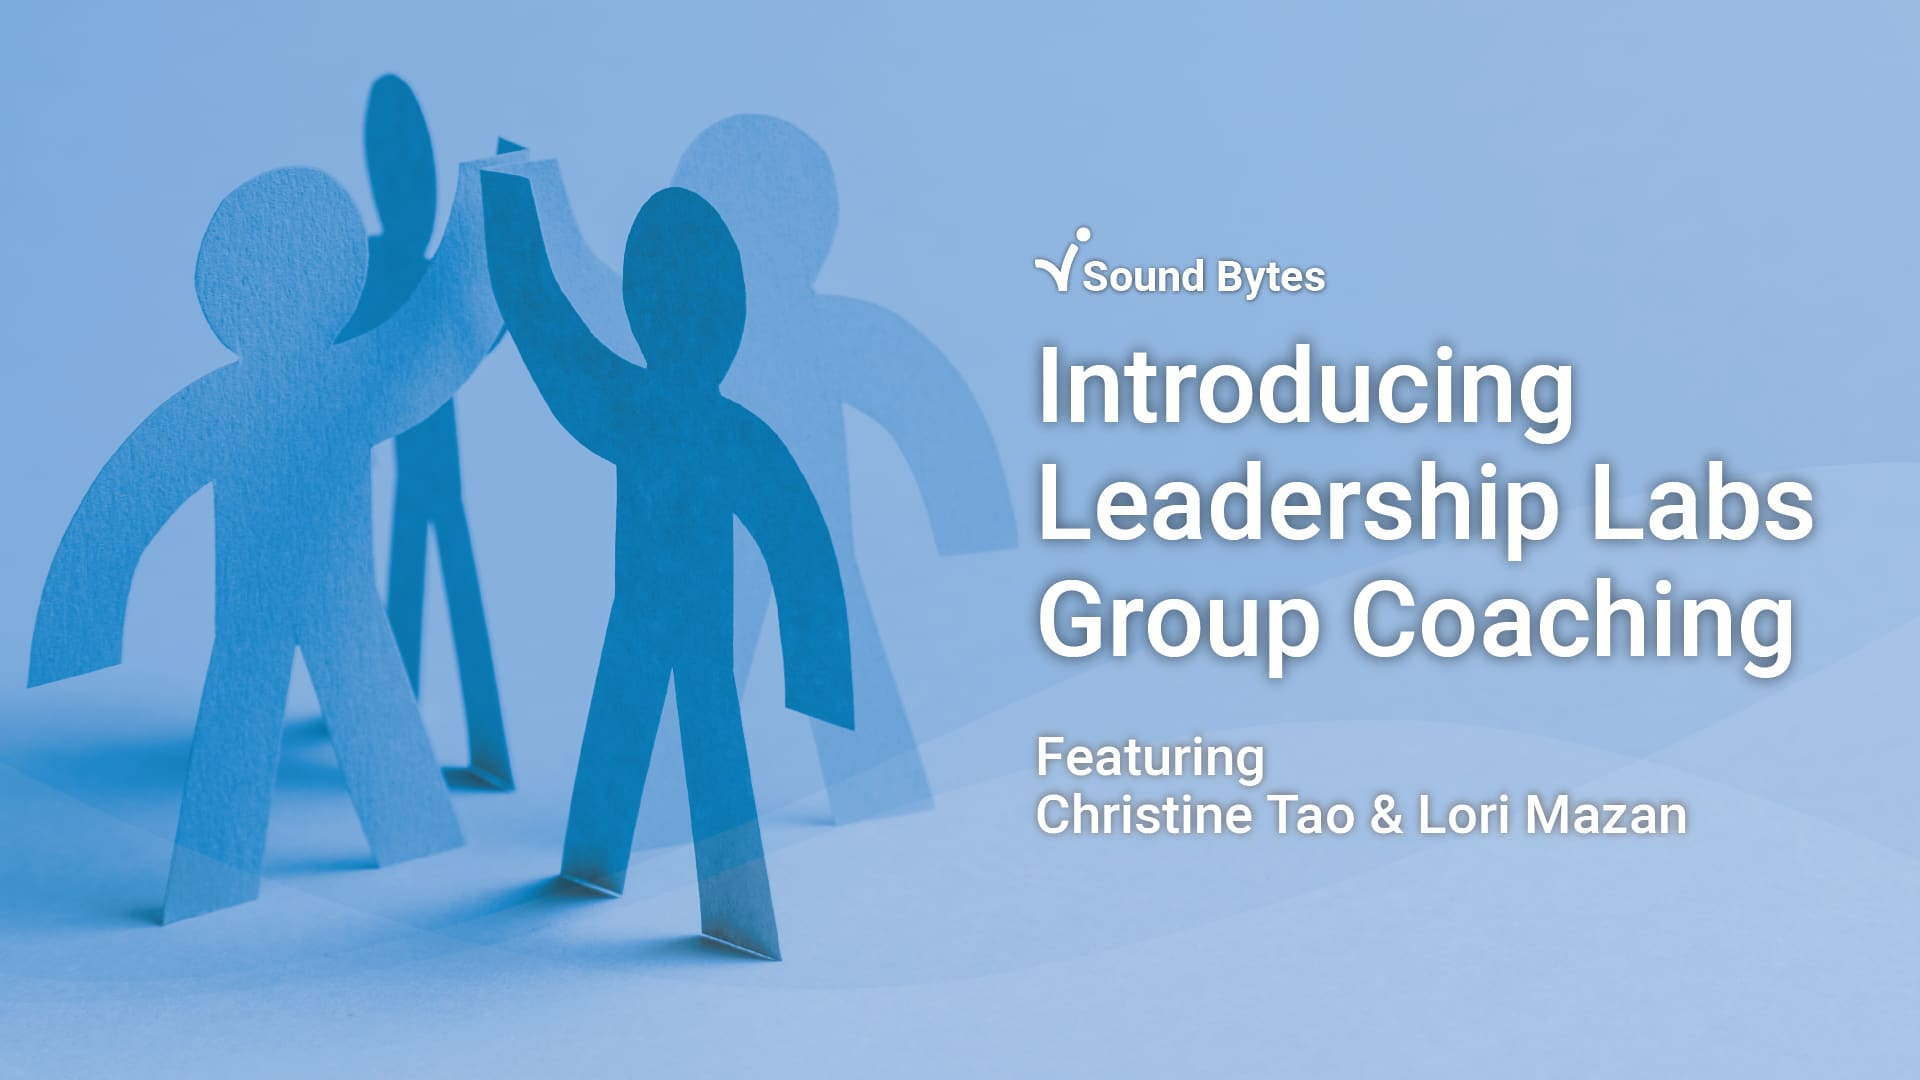 Introducing Leadership Labs Group Coaching